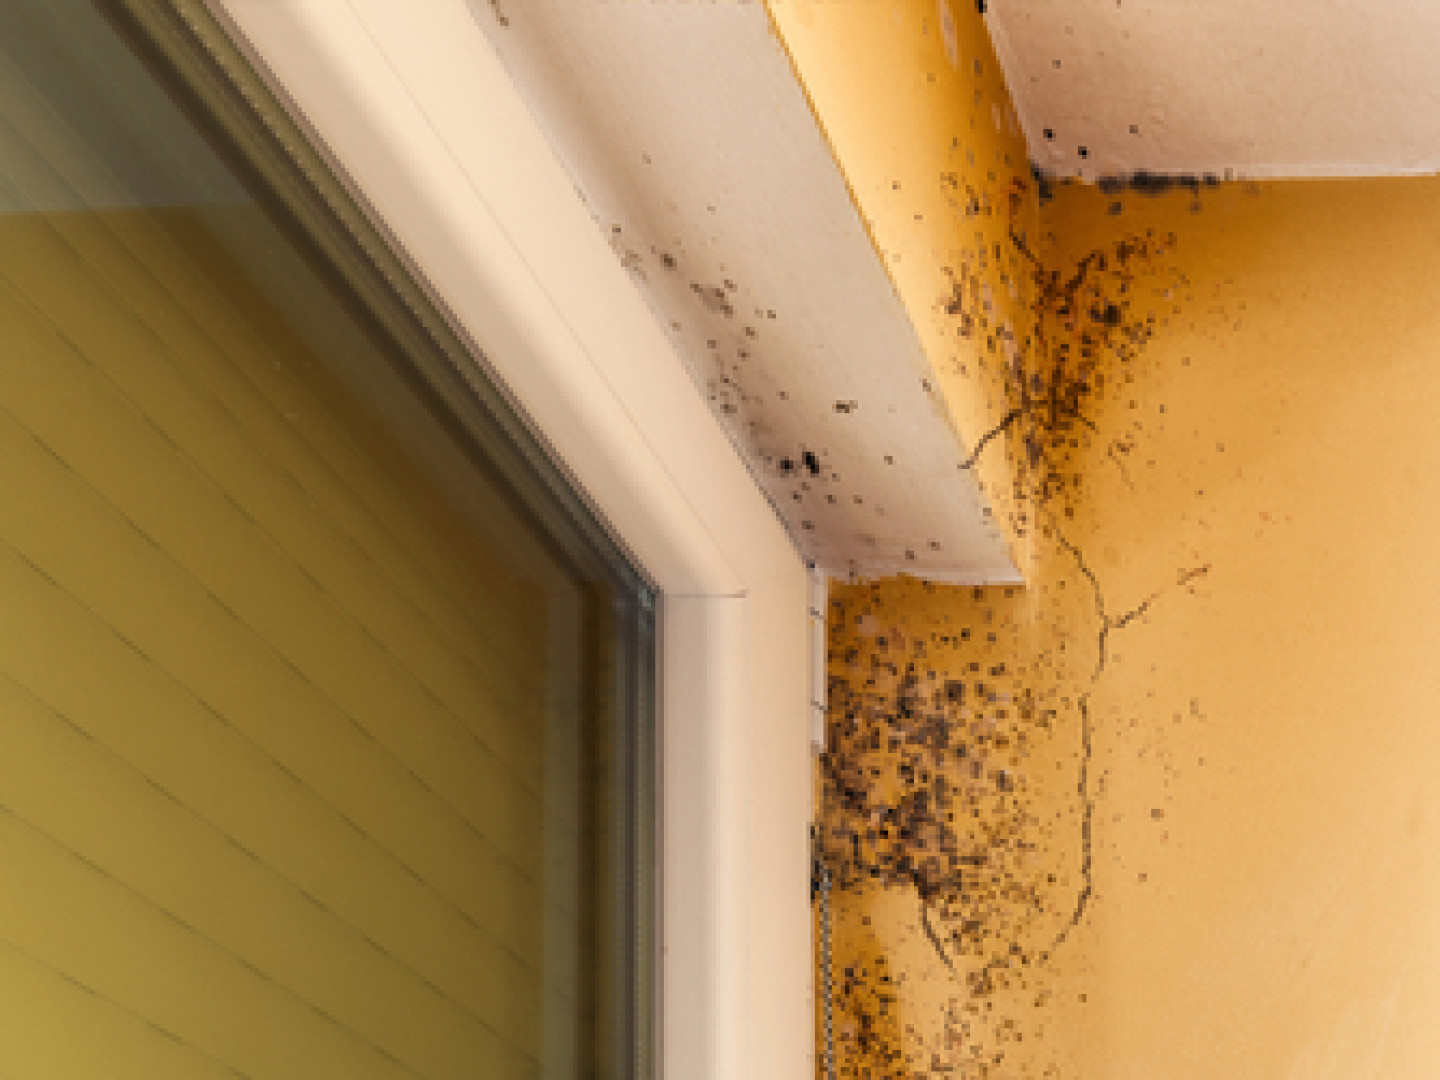 What are the symptoms of chronic mold exposure